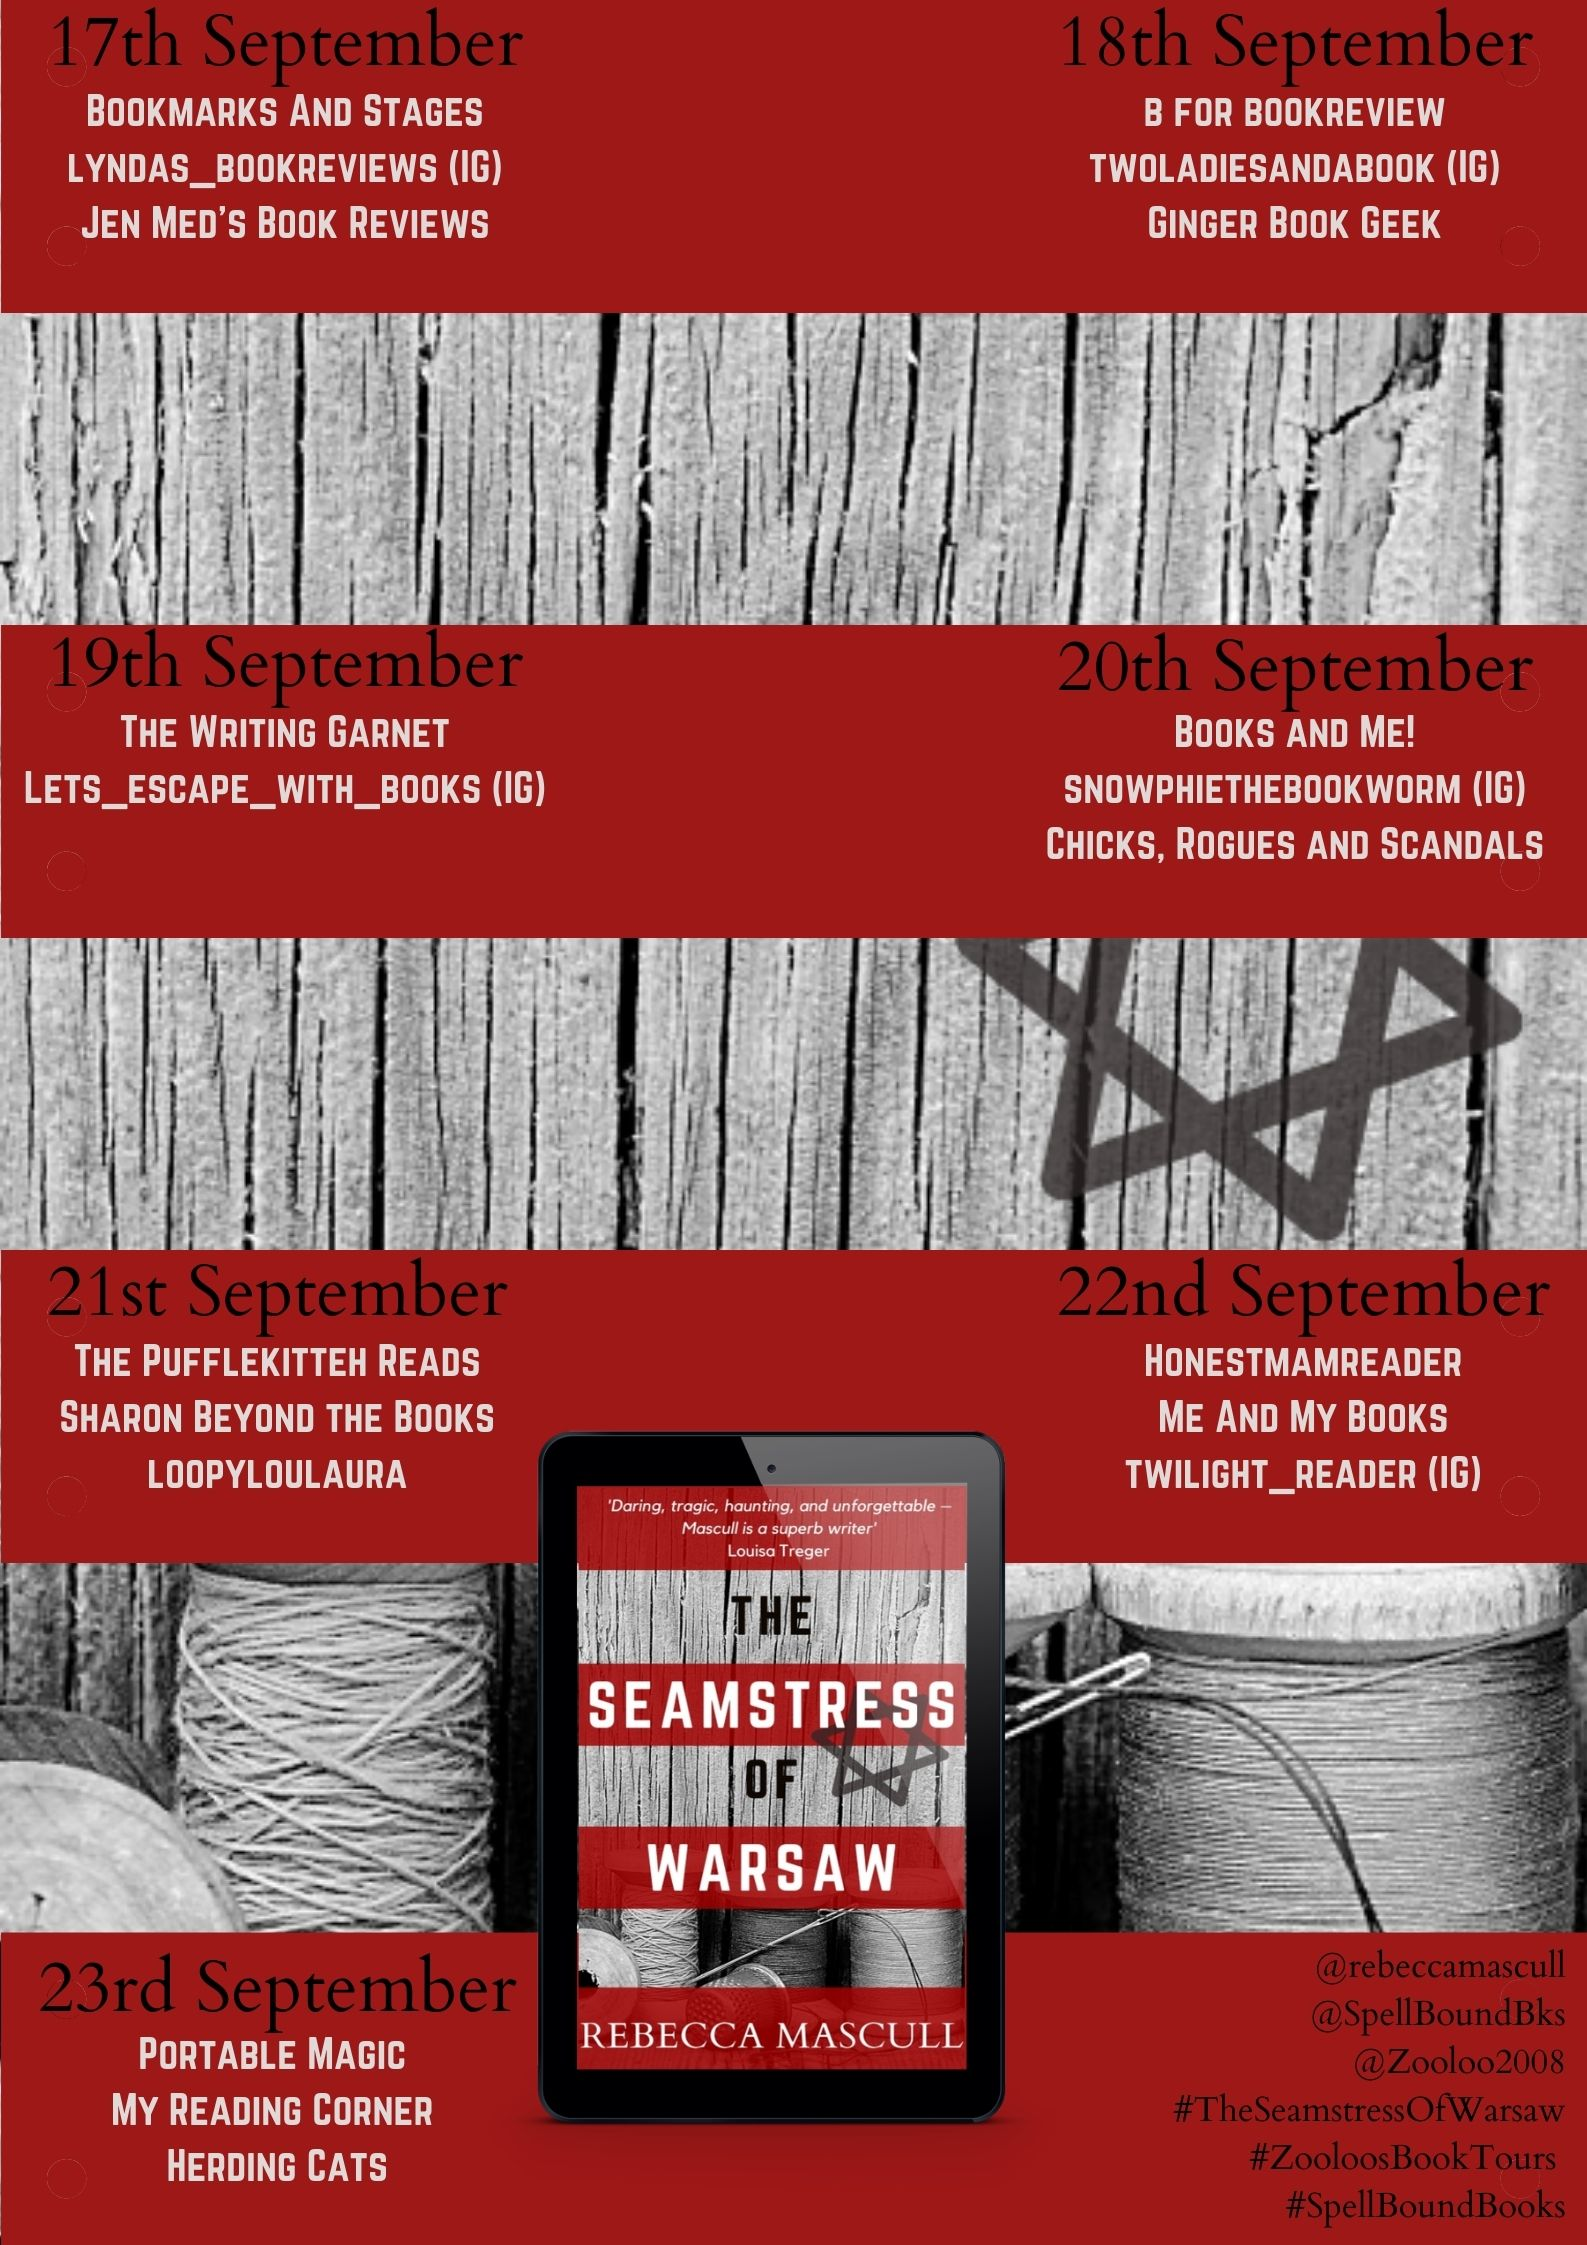 The Seamstress of Warsaw blog tour banner